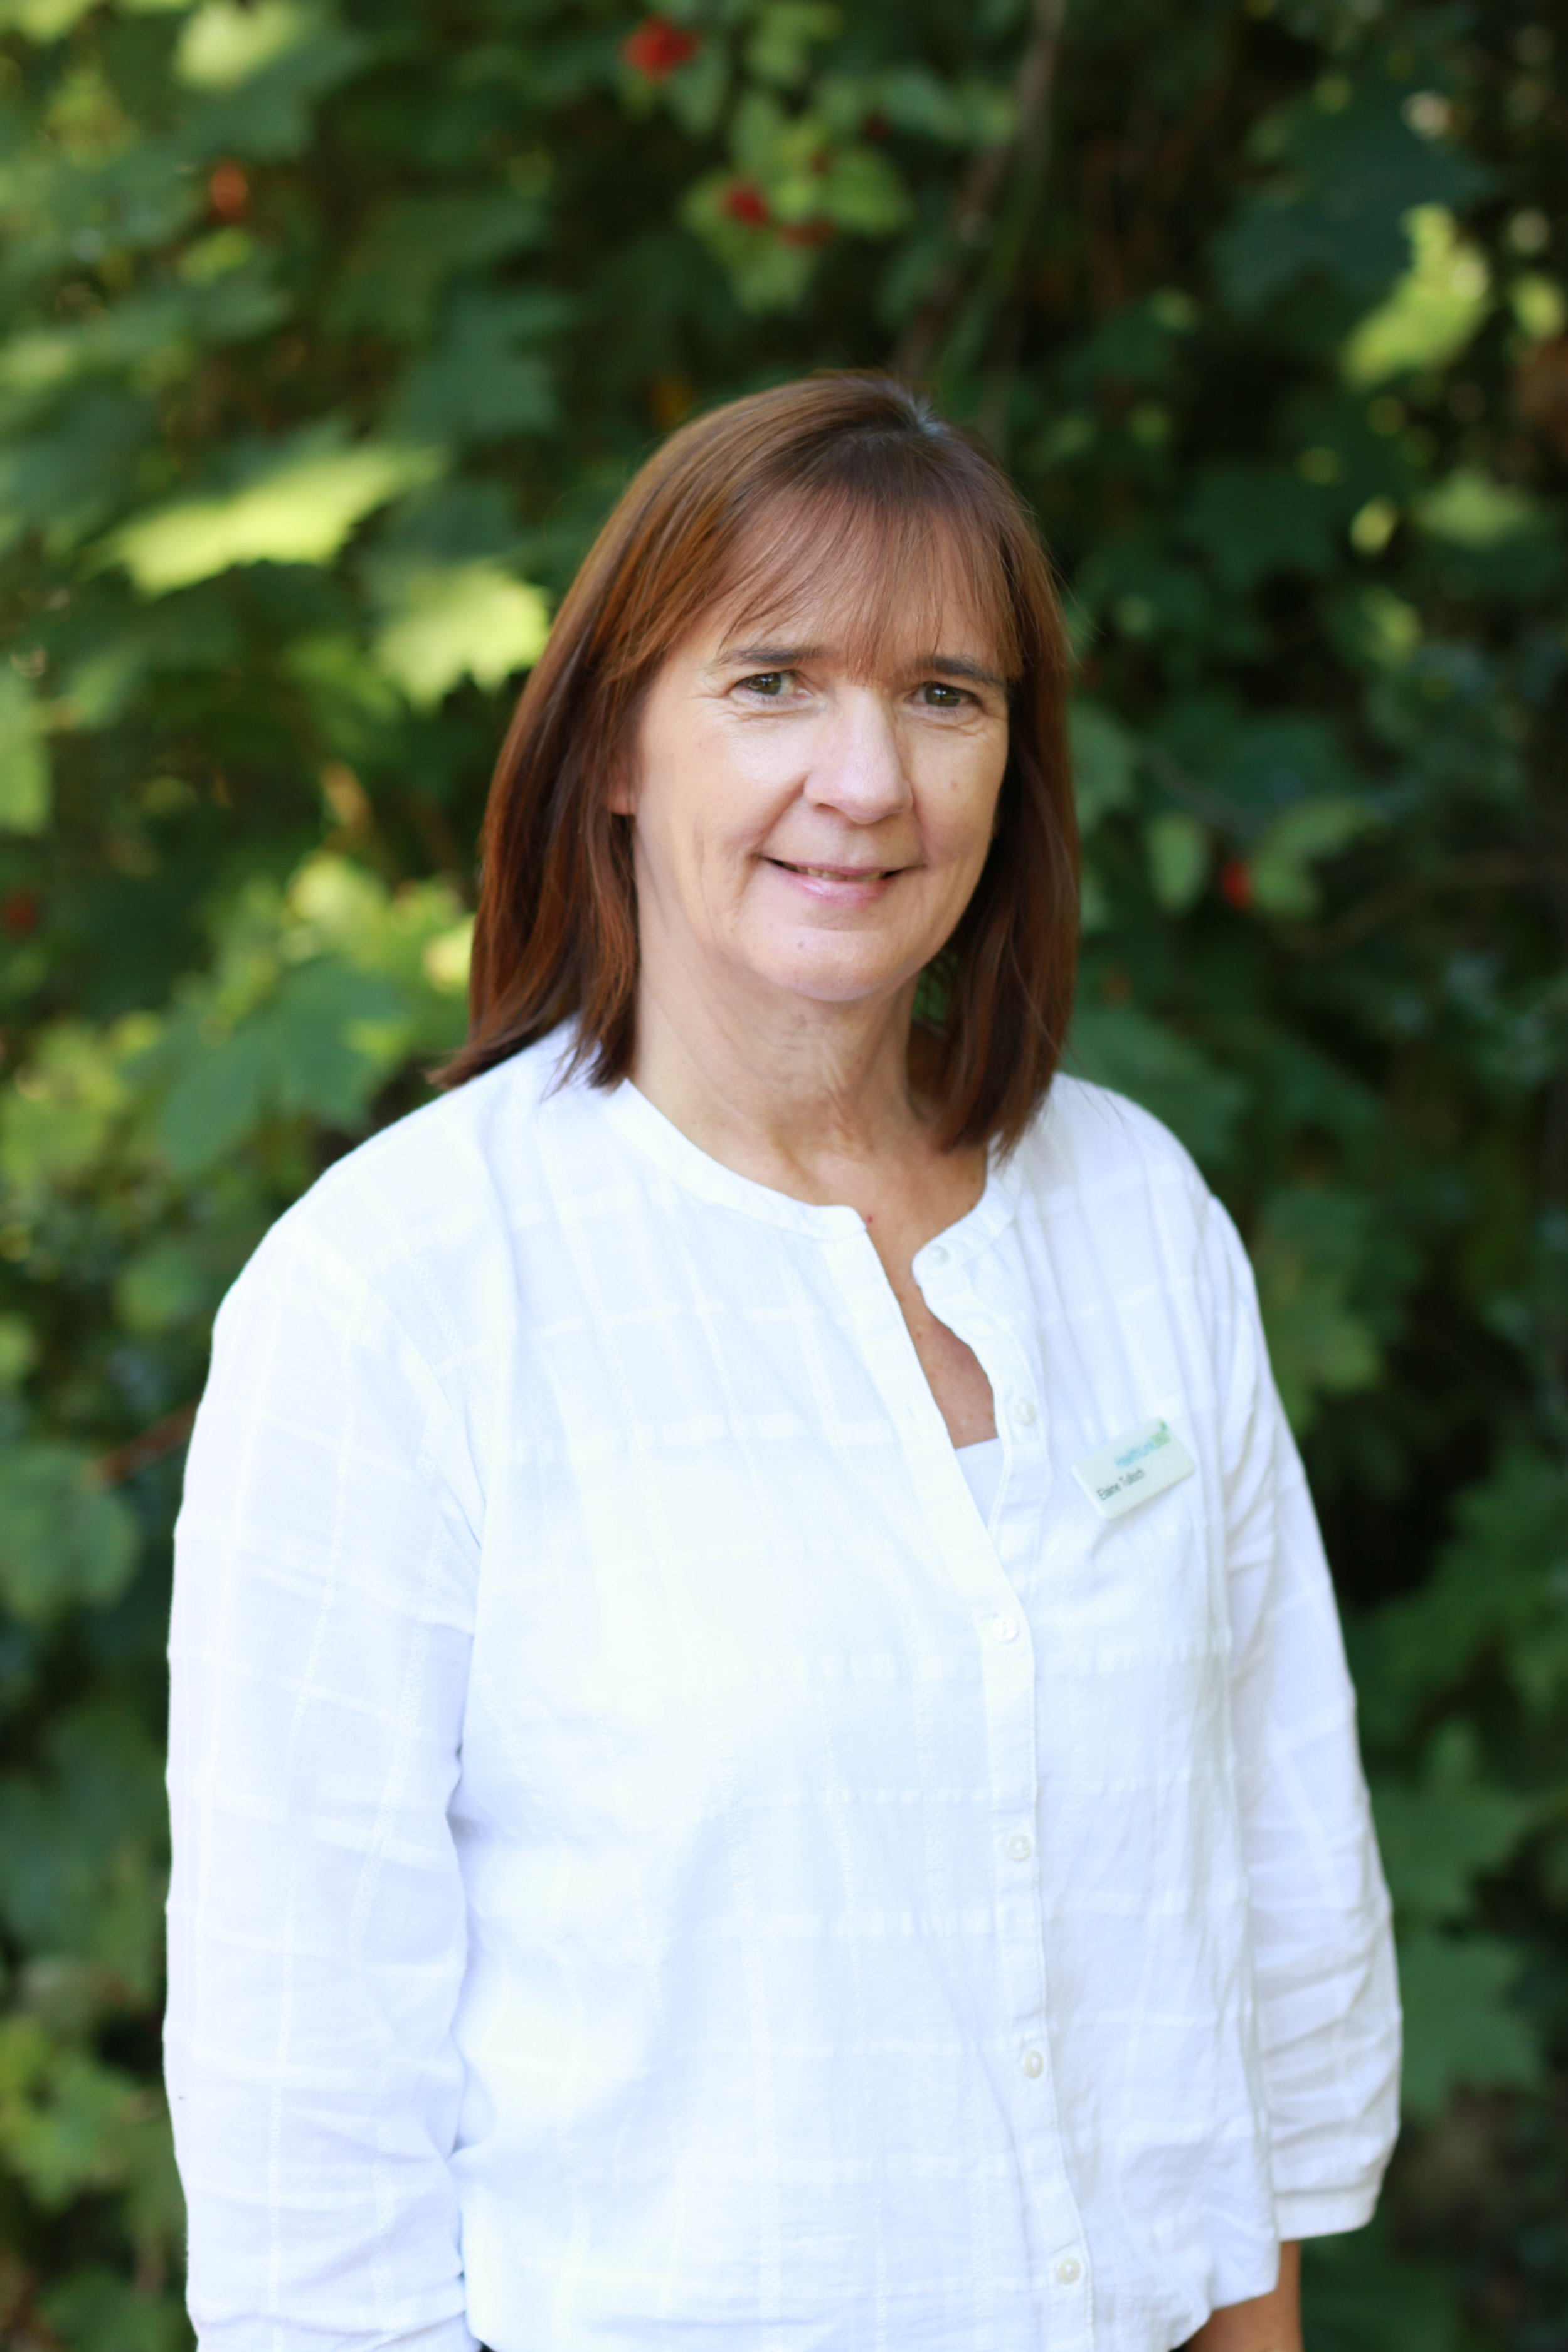 Elaine joined HealthLink360 in 2014 and keeps our Travel Clinic running smoothly. With an extensive background in banking she brings to the role excellent skills in client care, organisation and IT.